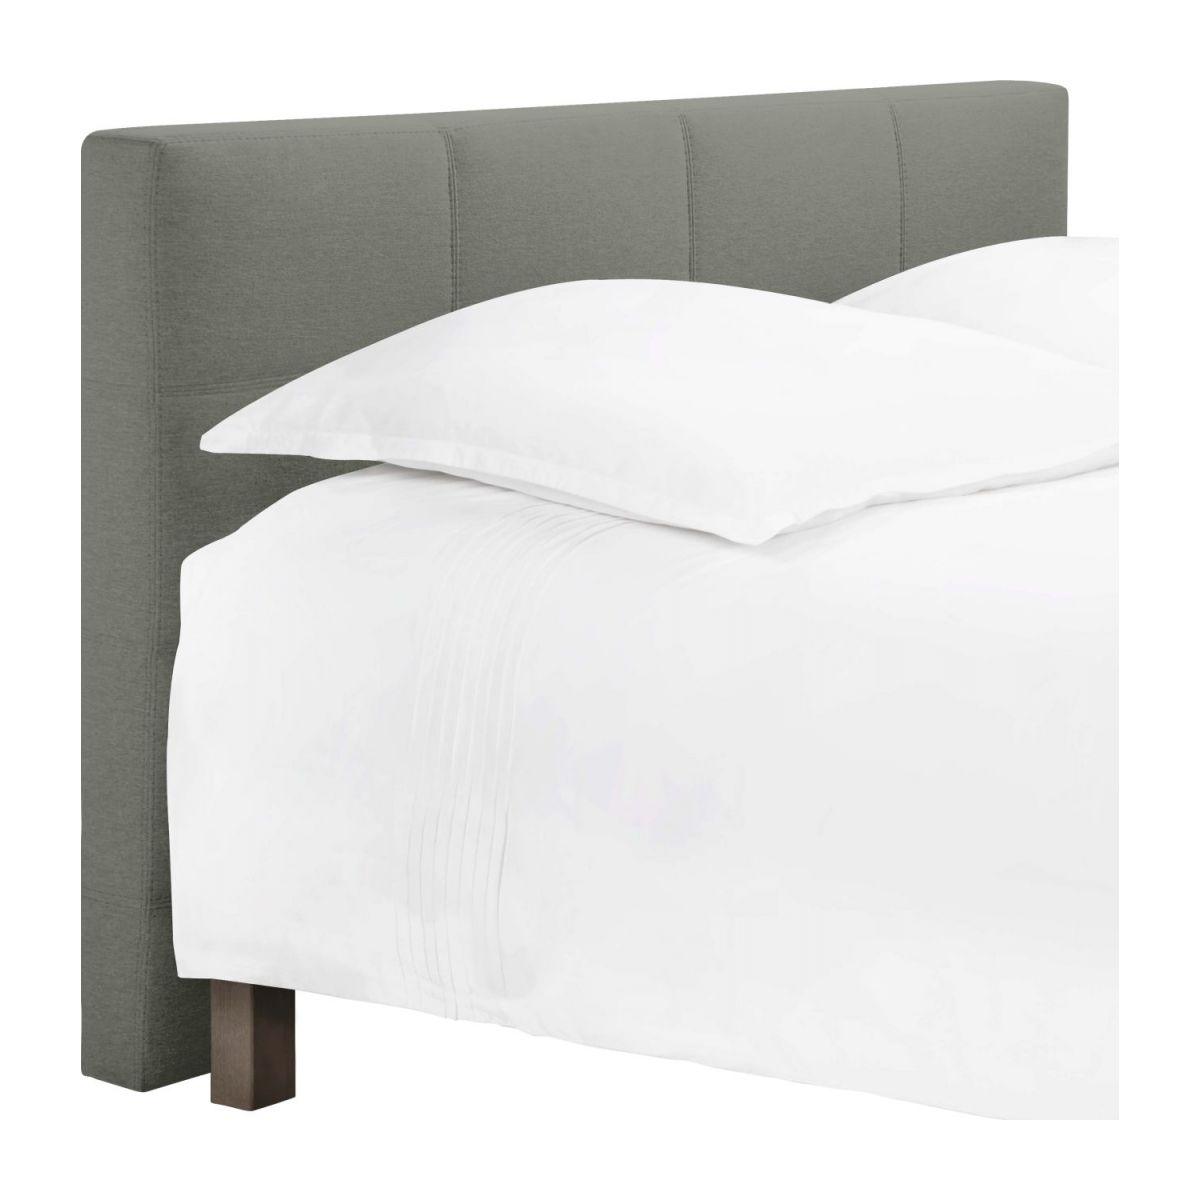 Headboard for 180cm box spring in fabric, mouse-grey n°1